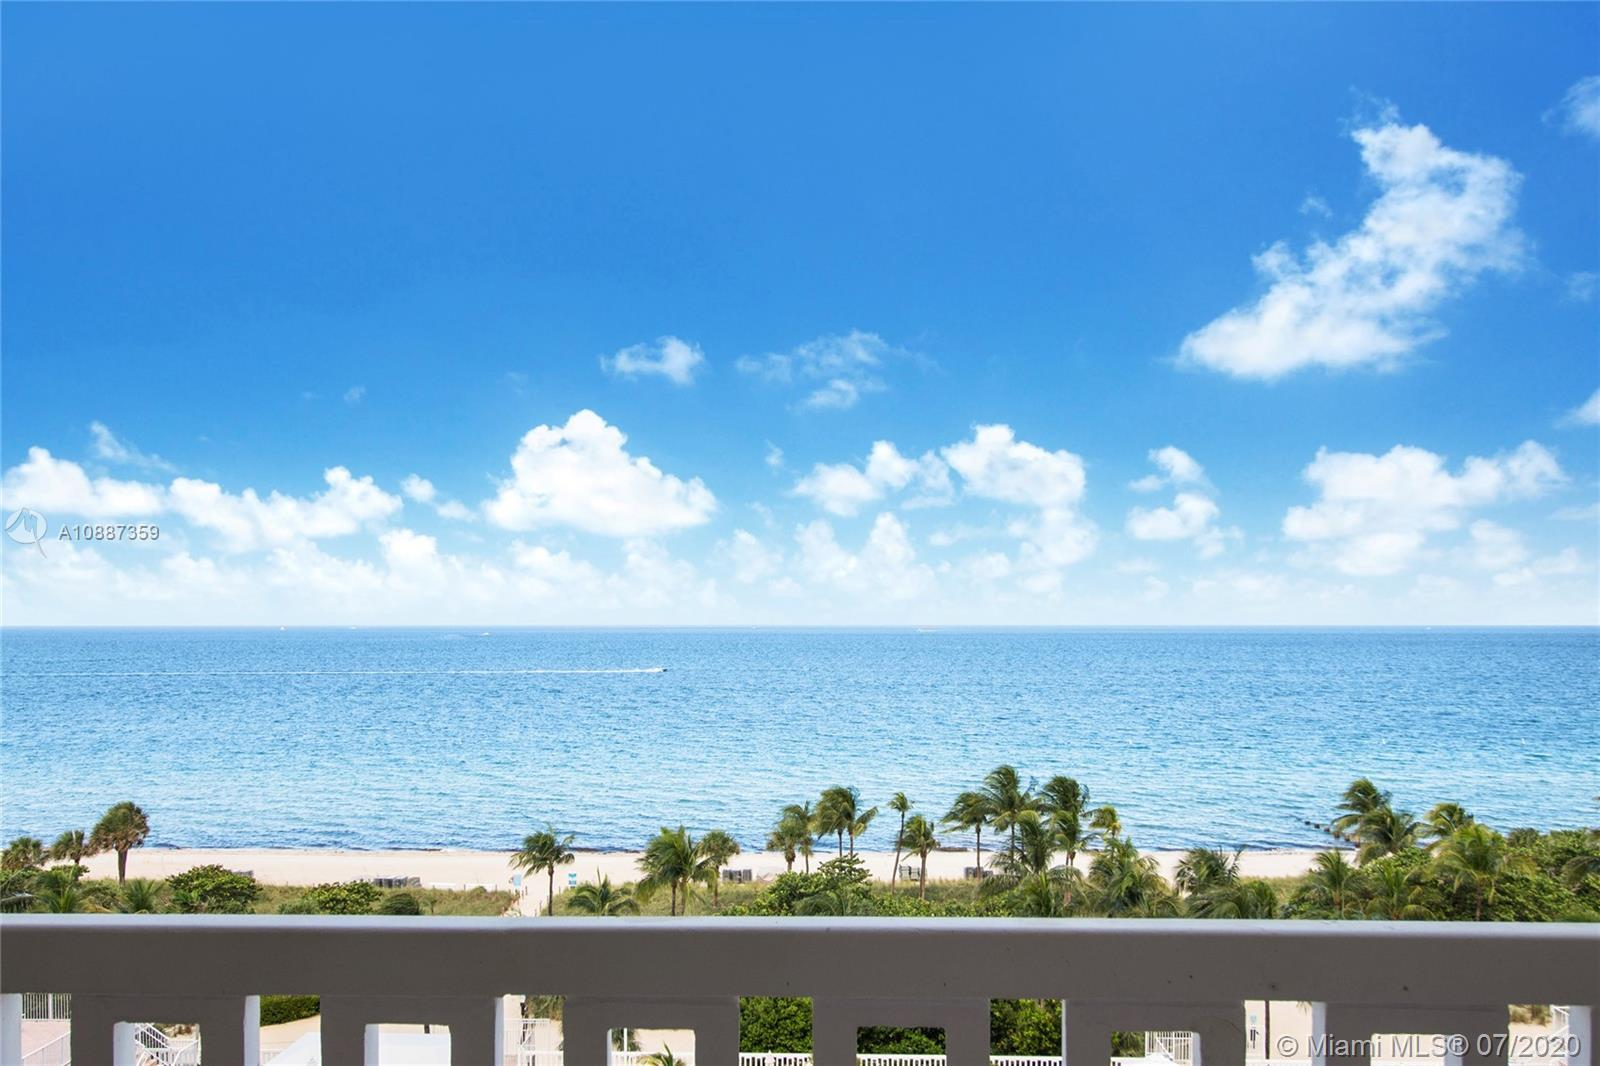 Balmoral condo located in the heart of the action, across prestigious Bal Harbour Shops, a turn key